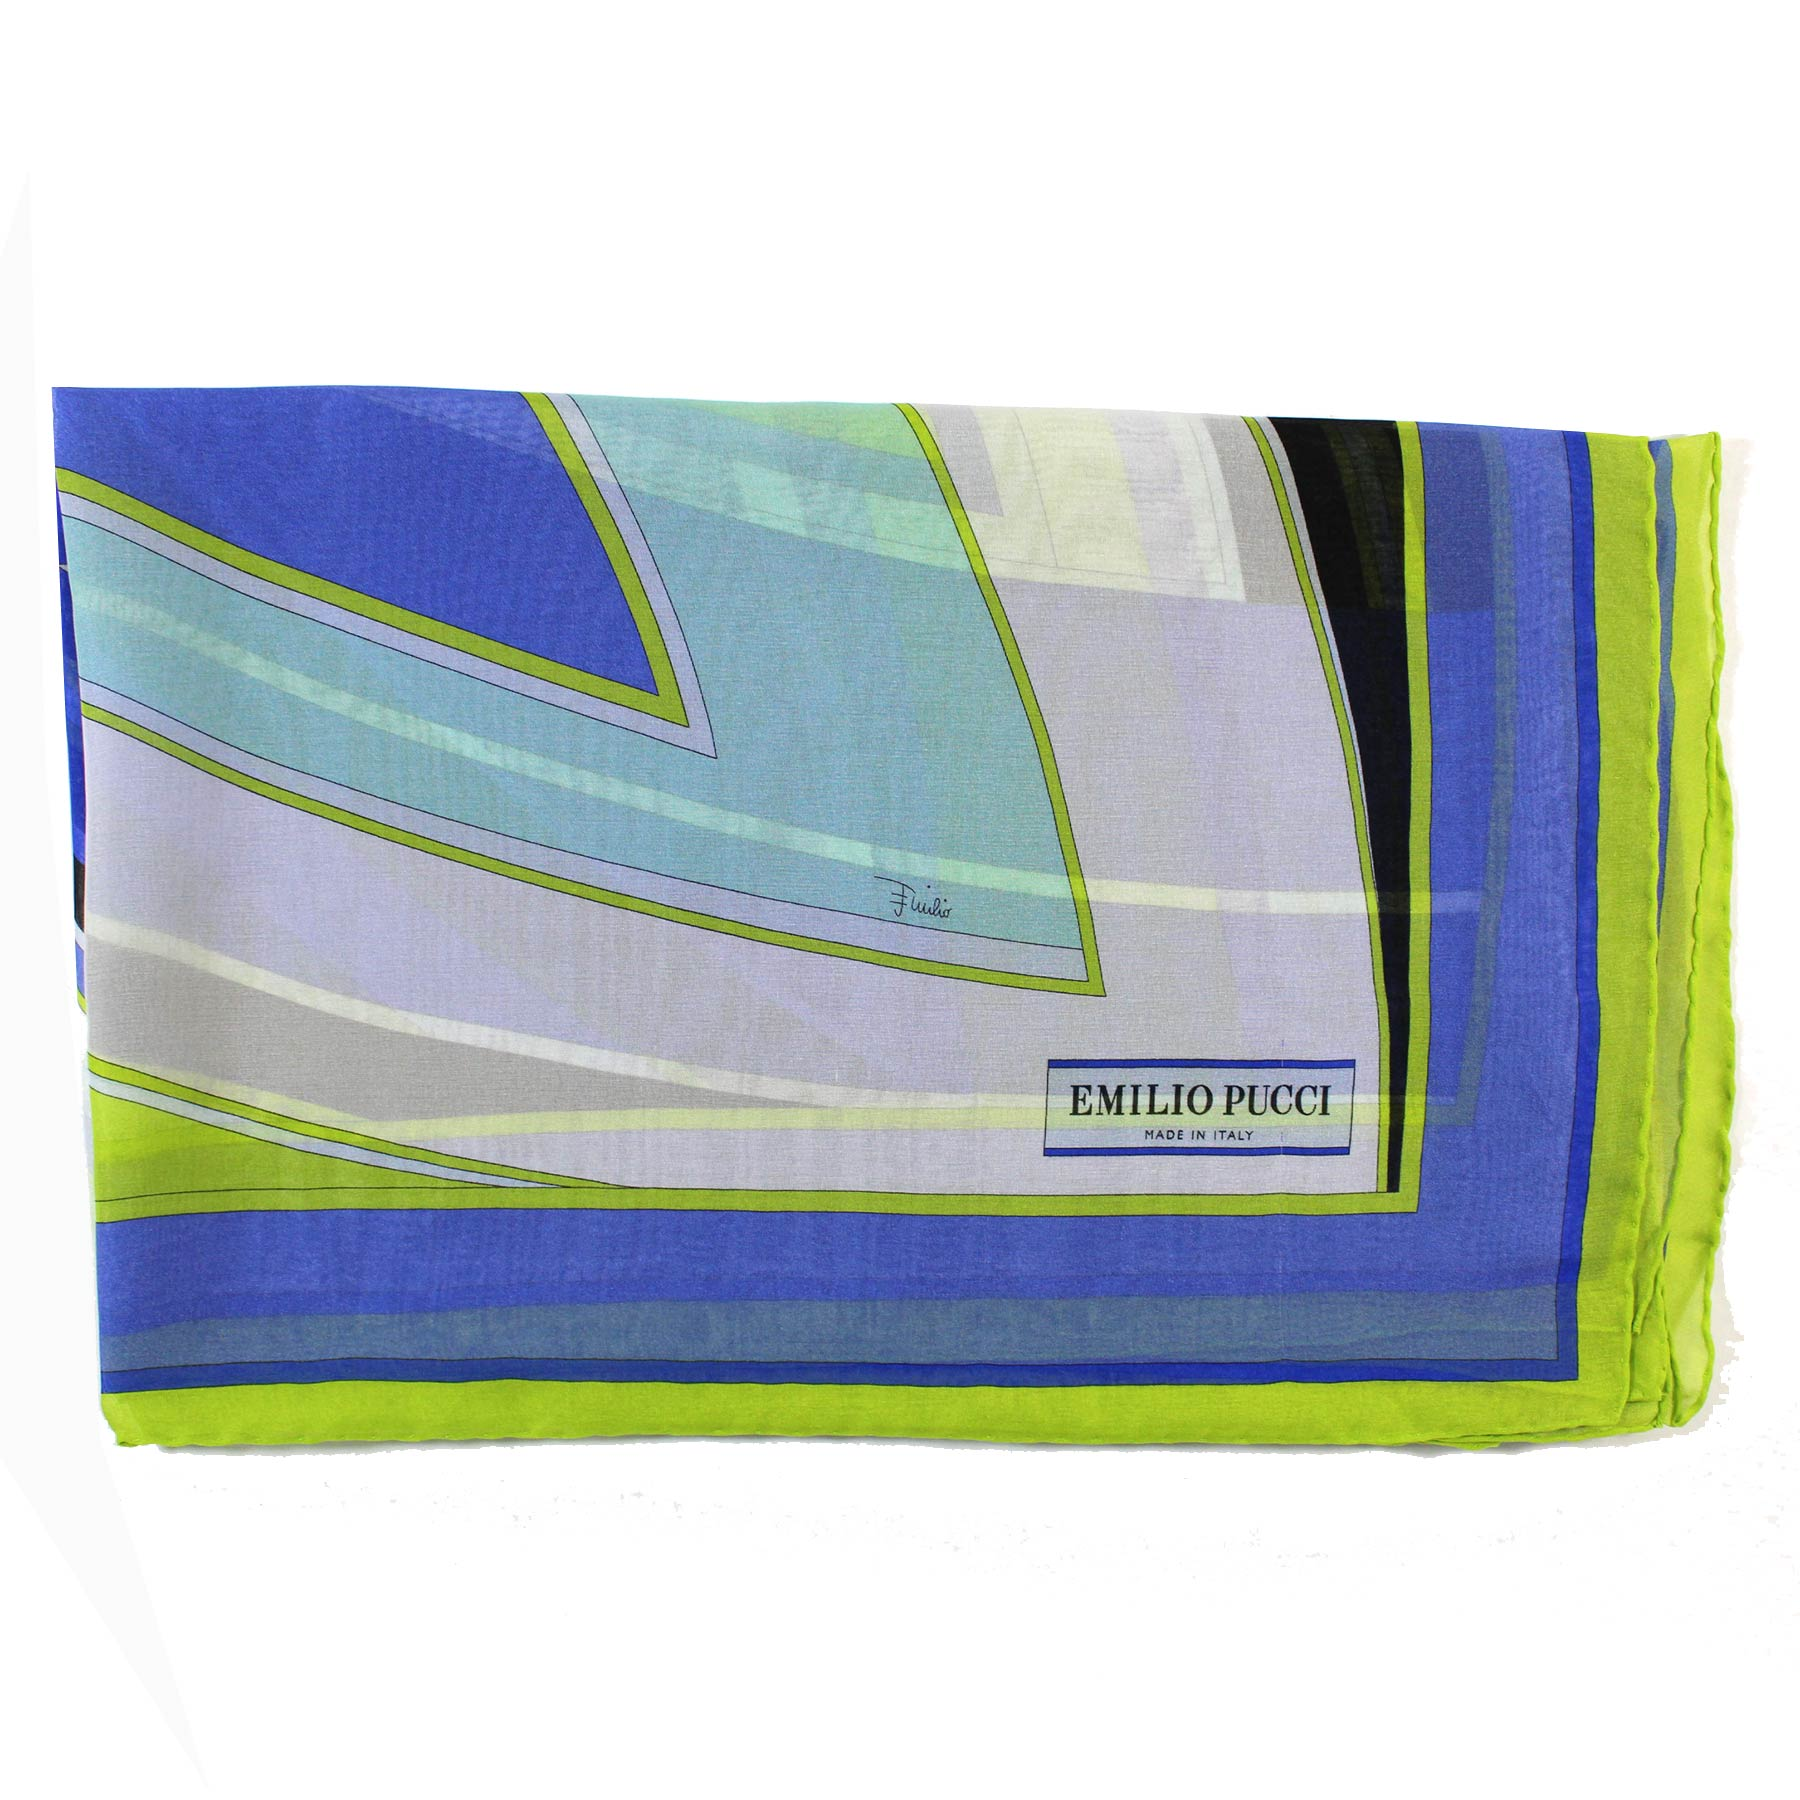 Emilio Pucci Scarf Royal Blue Lime Signature Print - Chiffon Silk Women Shawl